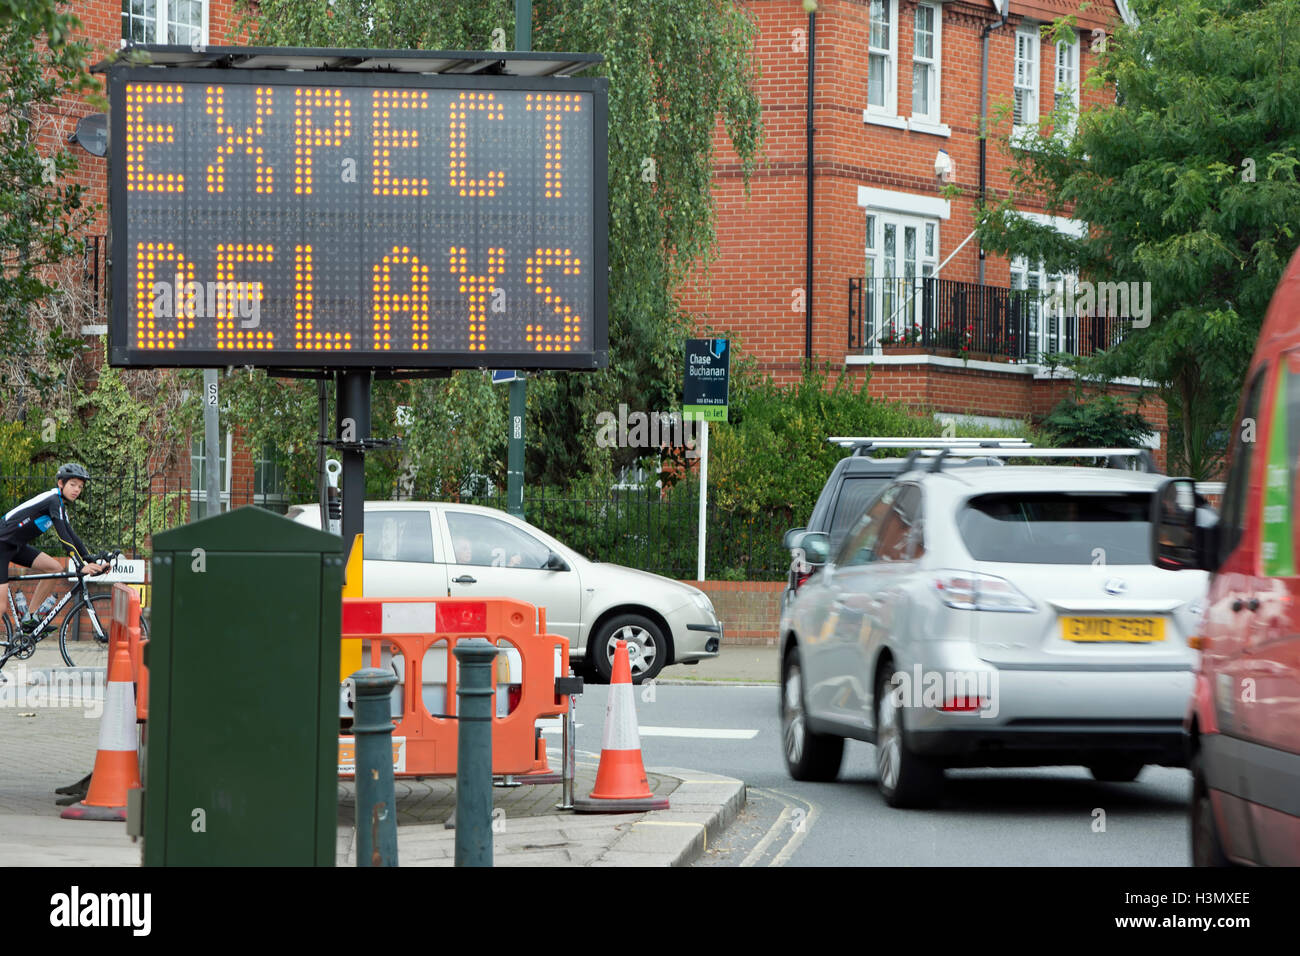 temporary expect delays sign at a road junction in twickenham, middlesex, england - Stock Image